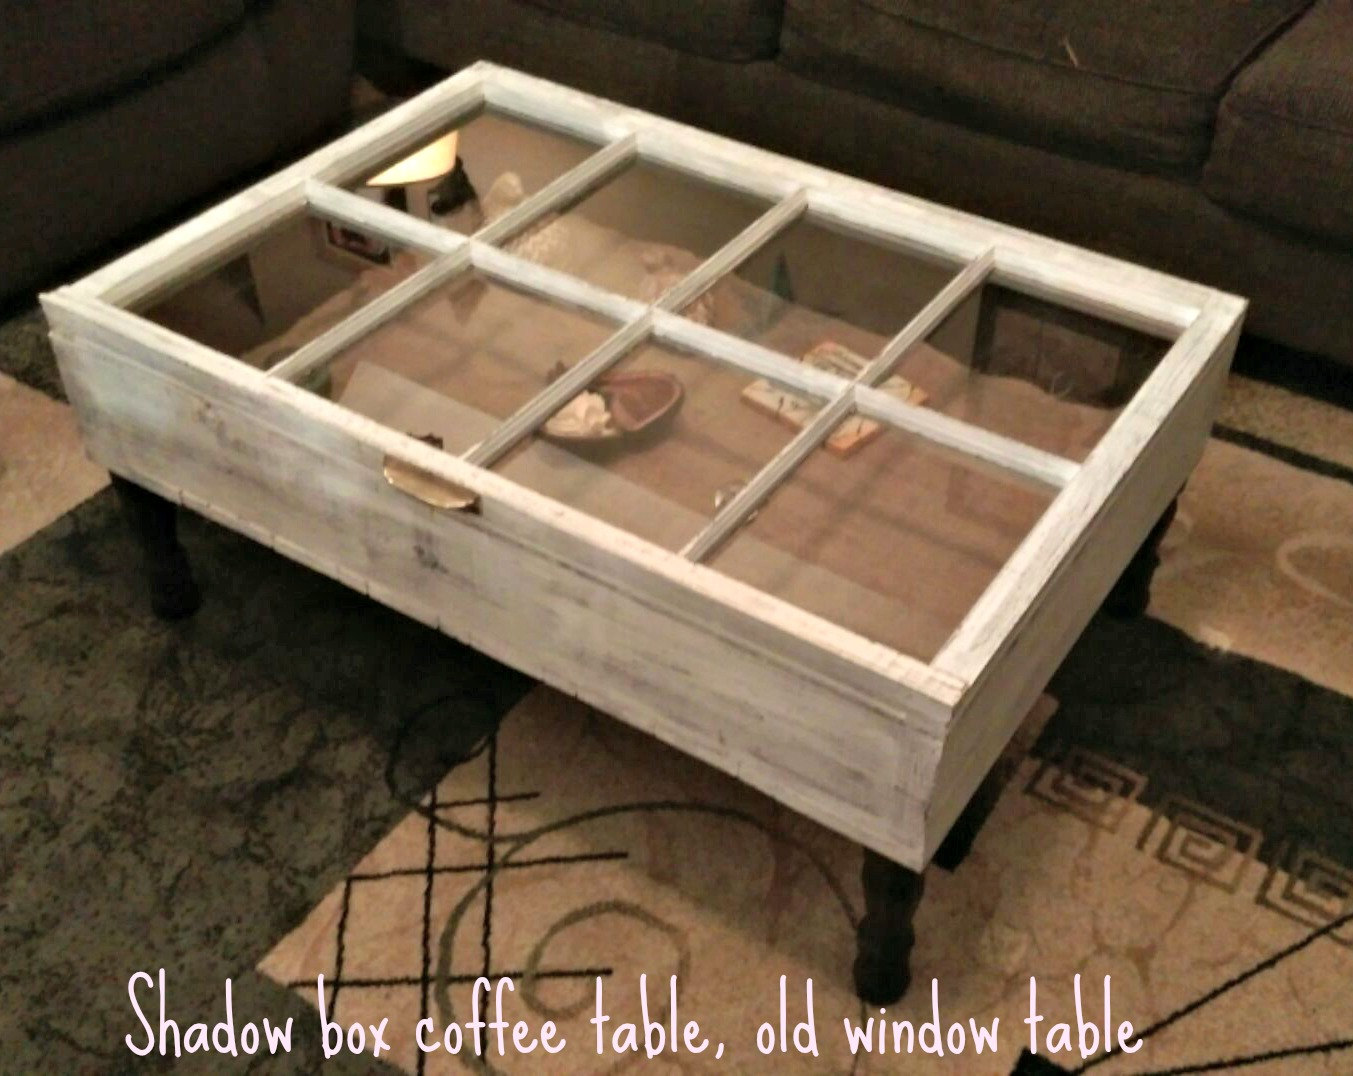 Rustic coffee table military display table shadow box coffee rustic coffee table military display table shadow box coffee table 8 pane shadow box table window coffee table display coffee table storage geotapseo Images